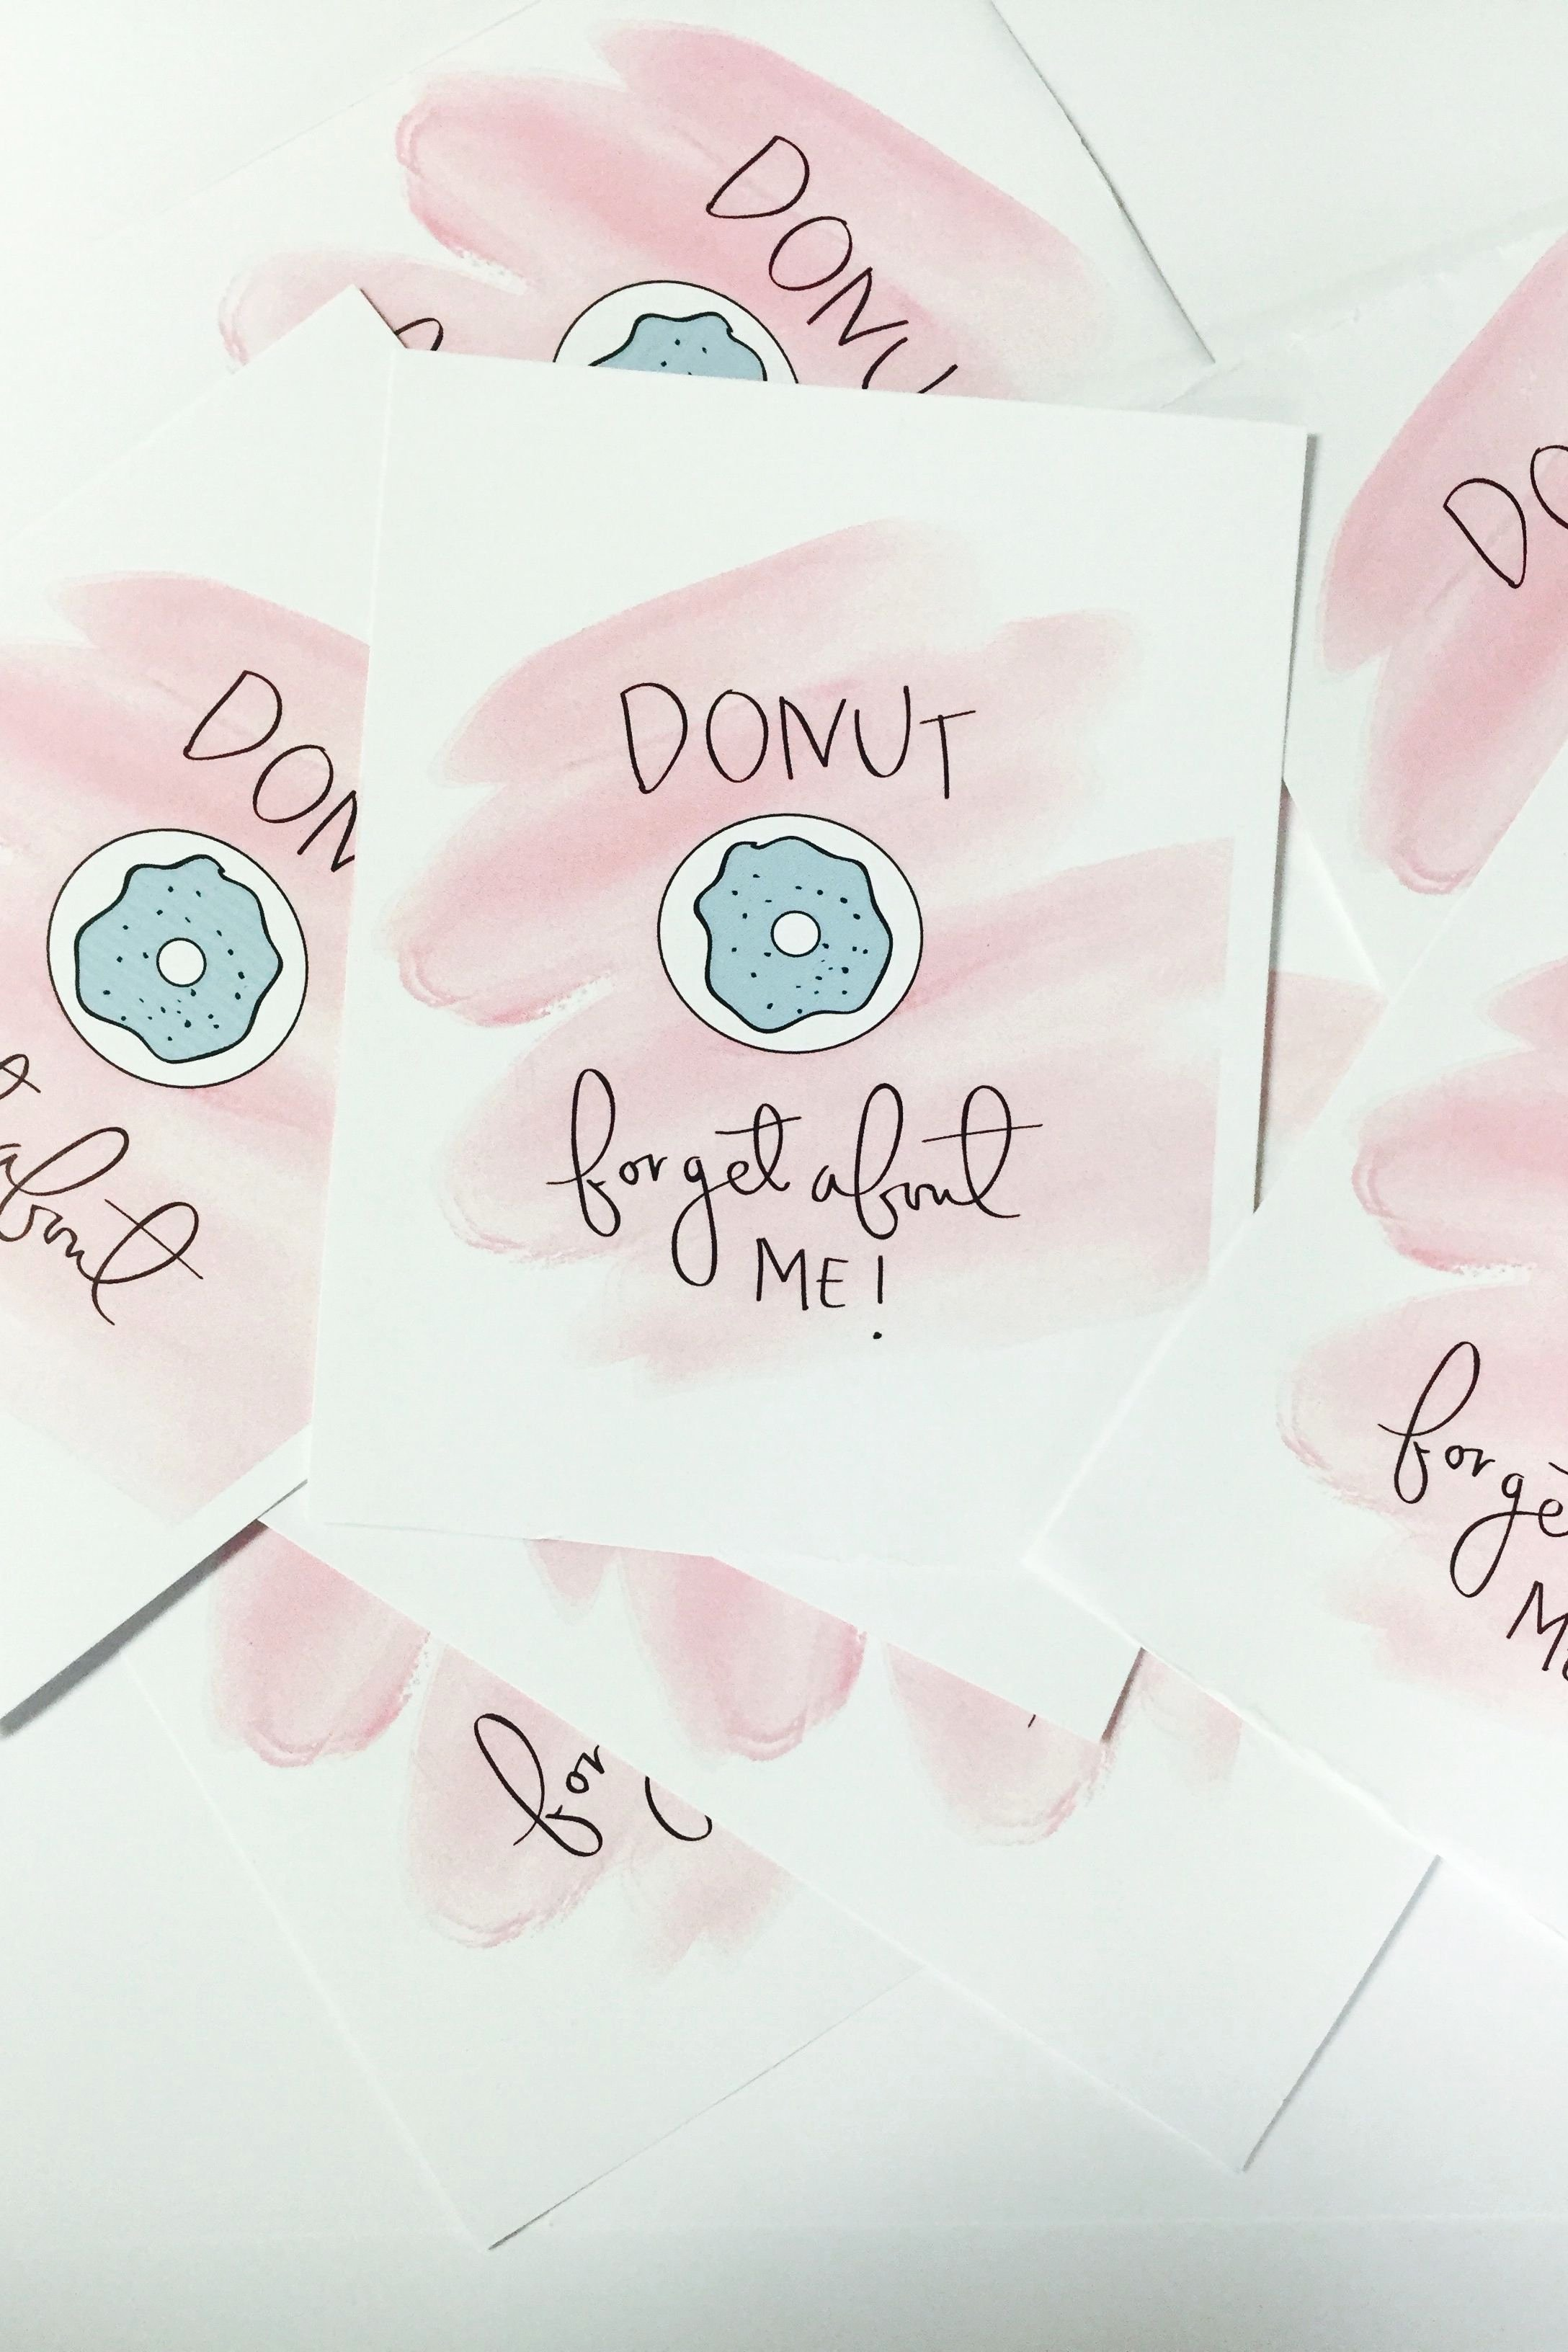 Printable Going Away Cards Fresh Donut for About Me Card & Printable Ly $7